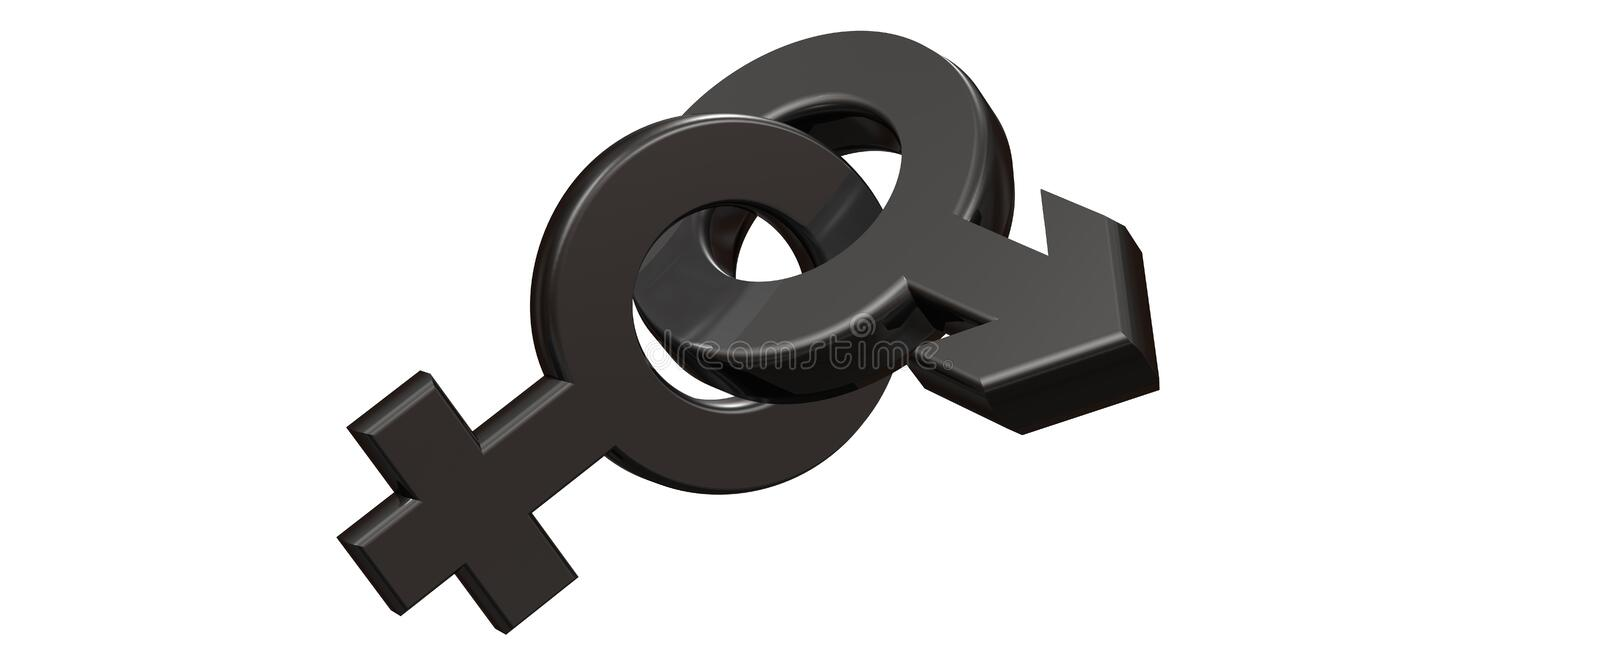 Male And Female Symbols 3d Rendering Stock Illustration